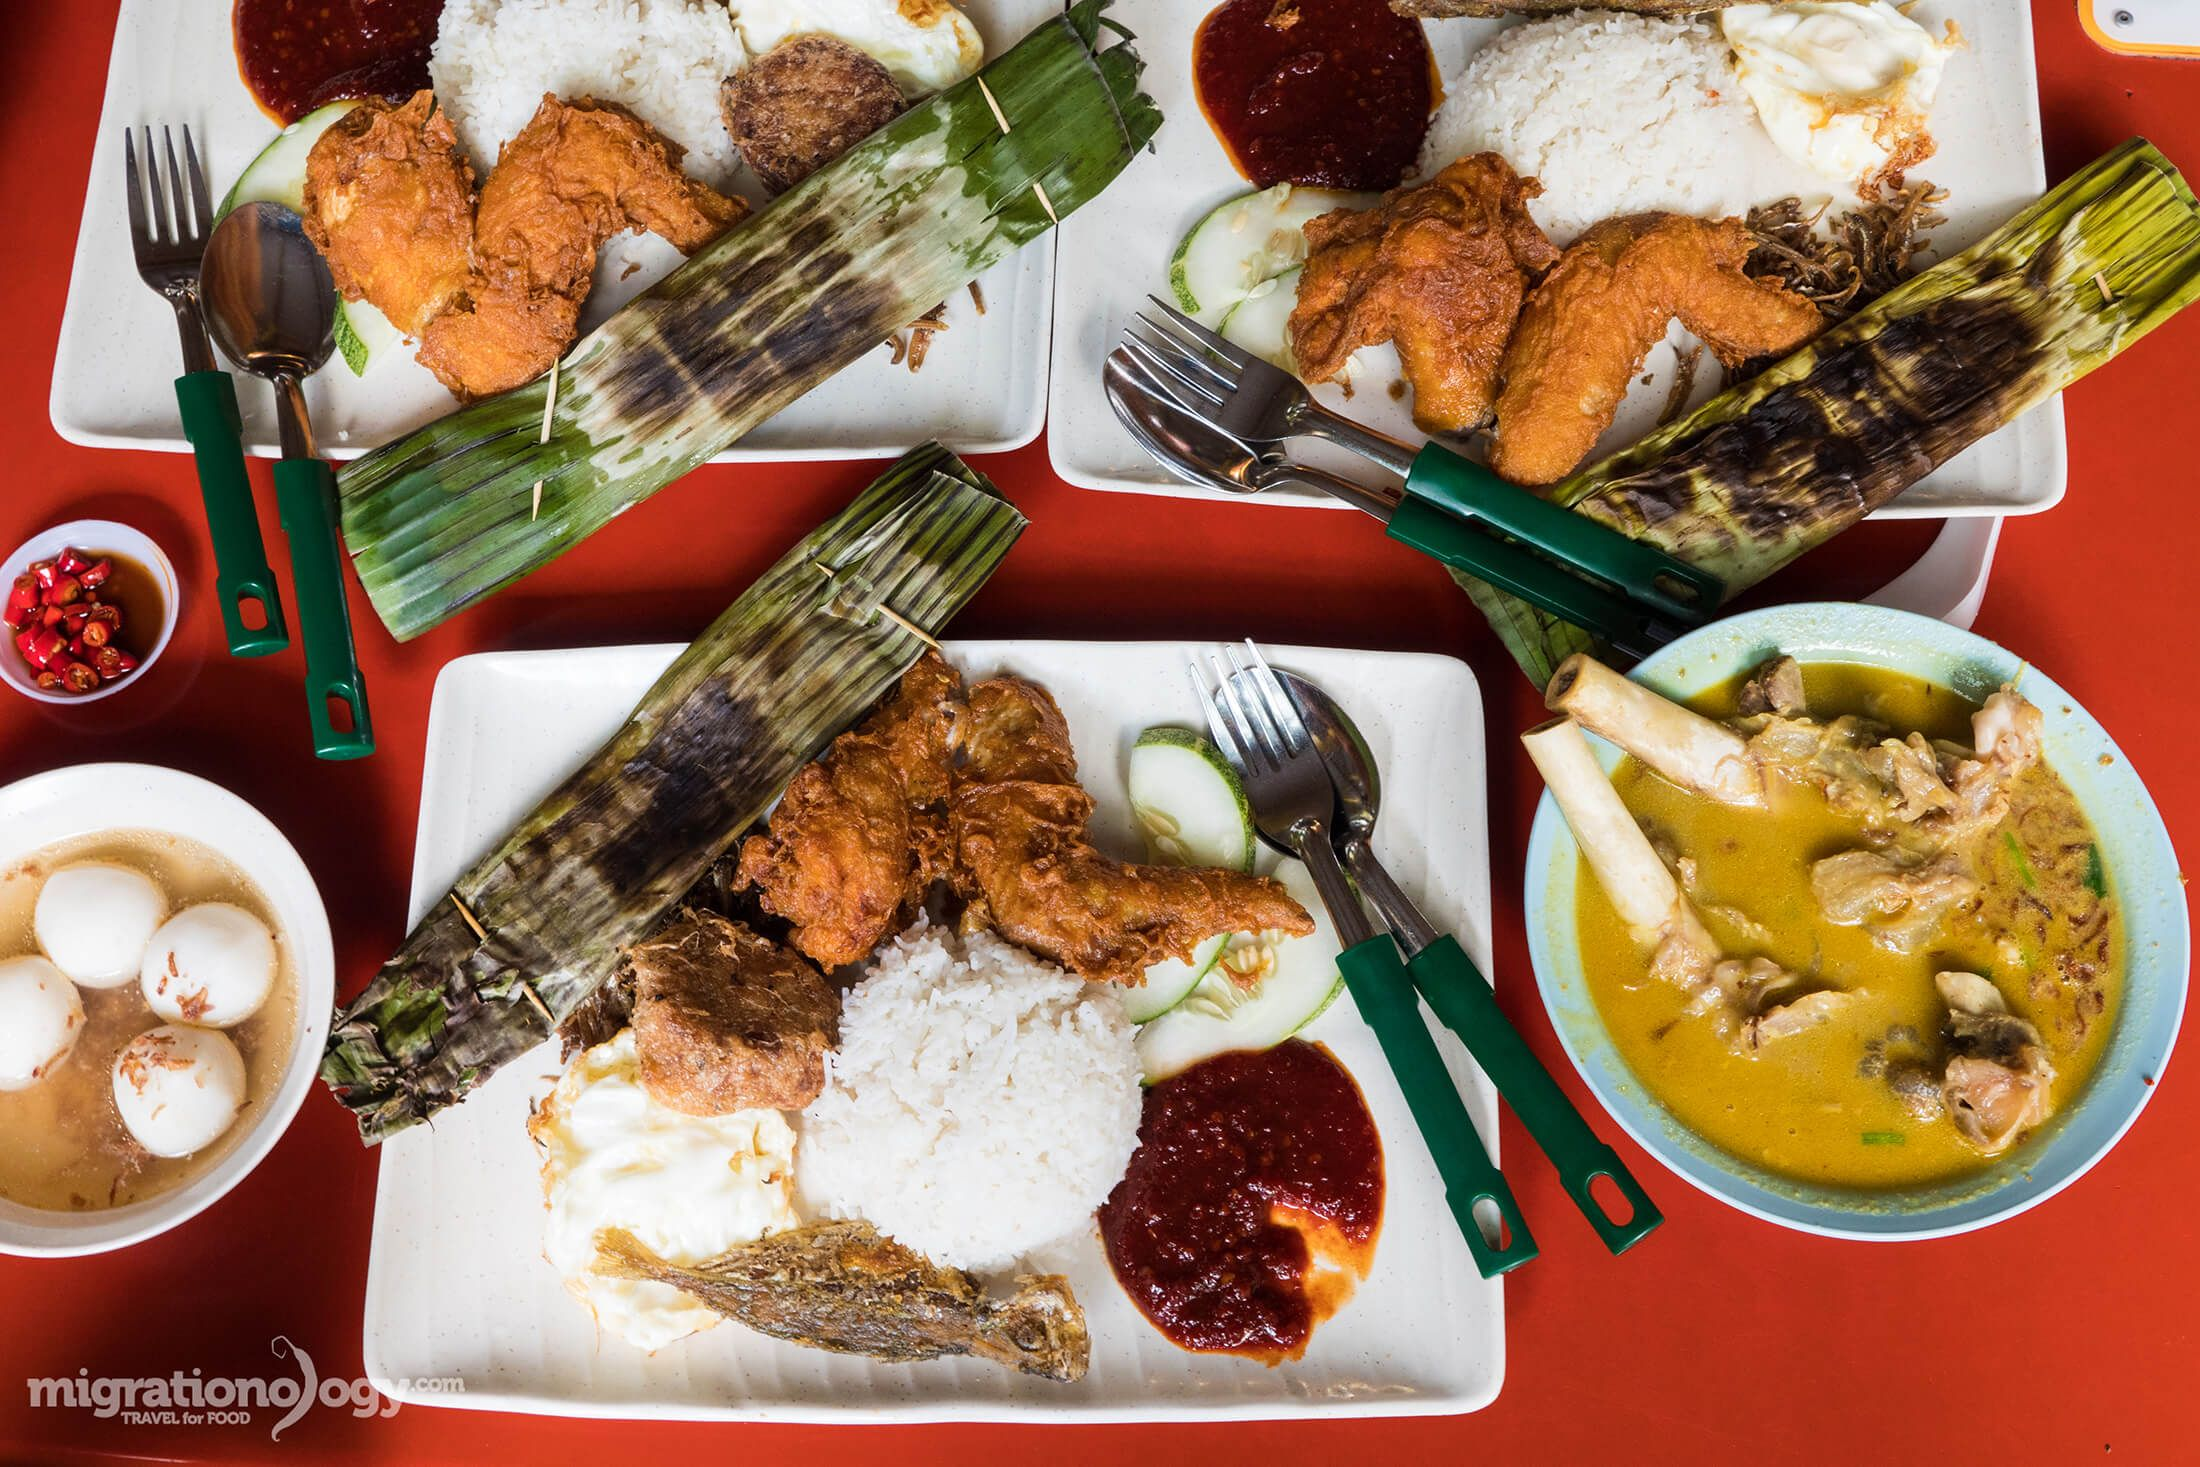 Eating the Famous Adam Road Nasi Lemak in Singapore